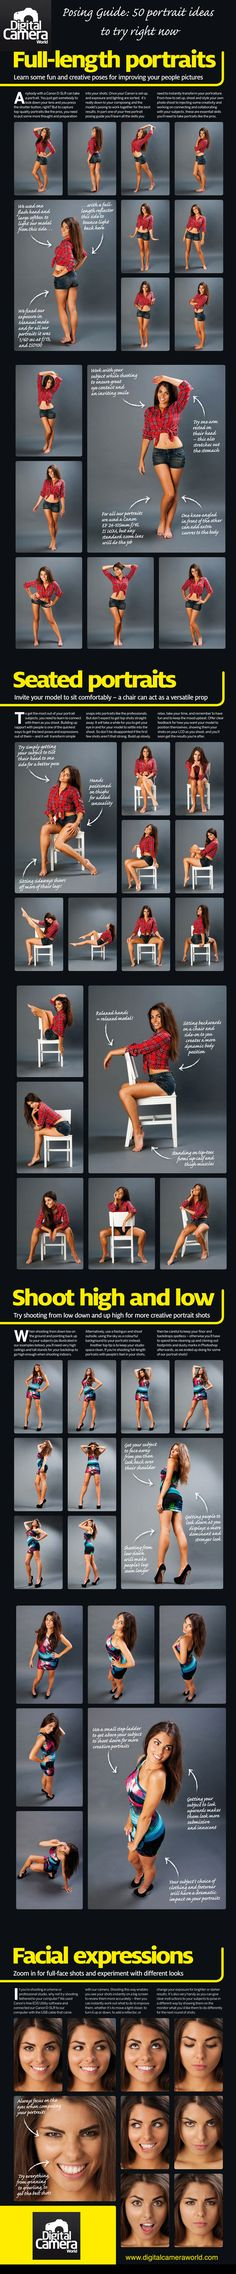 Posing Guide 54 Portrait Ideas to Try Right Now Infographic #photography #camera